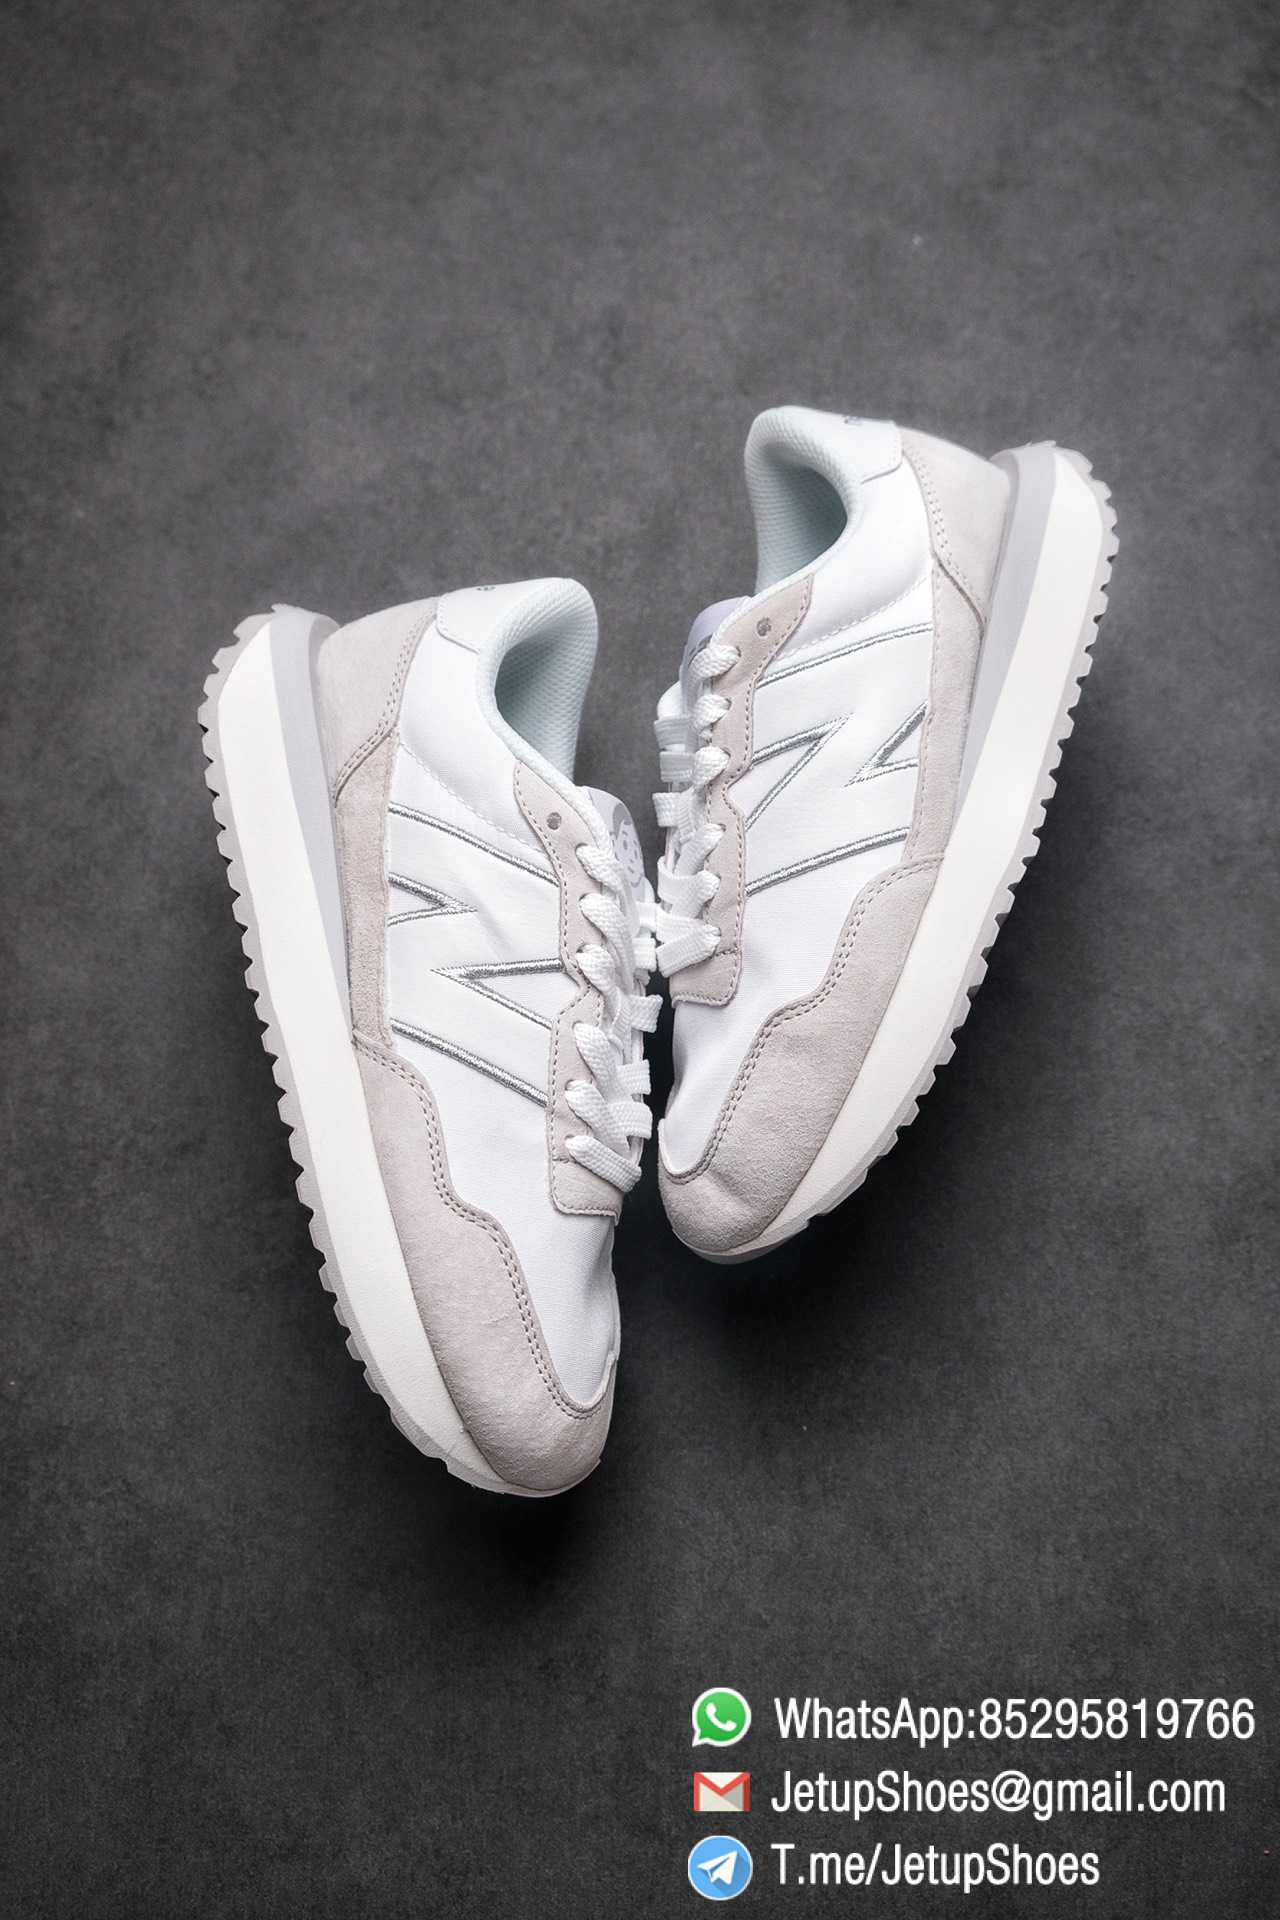 Best Replica 2021 New Balance 237 White Light Grey SKU MS237NW1 High Quality Running Sneakers 03